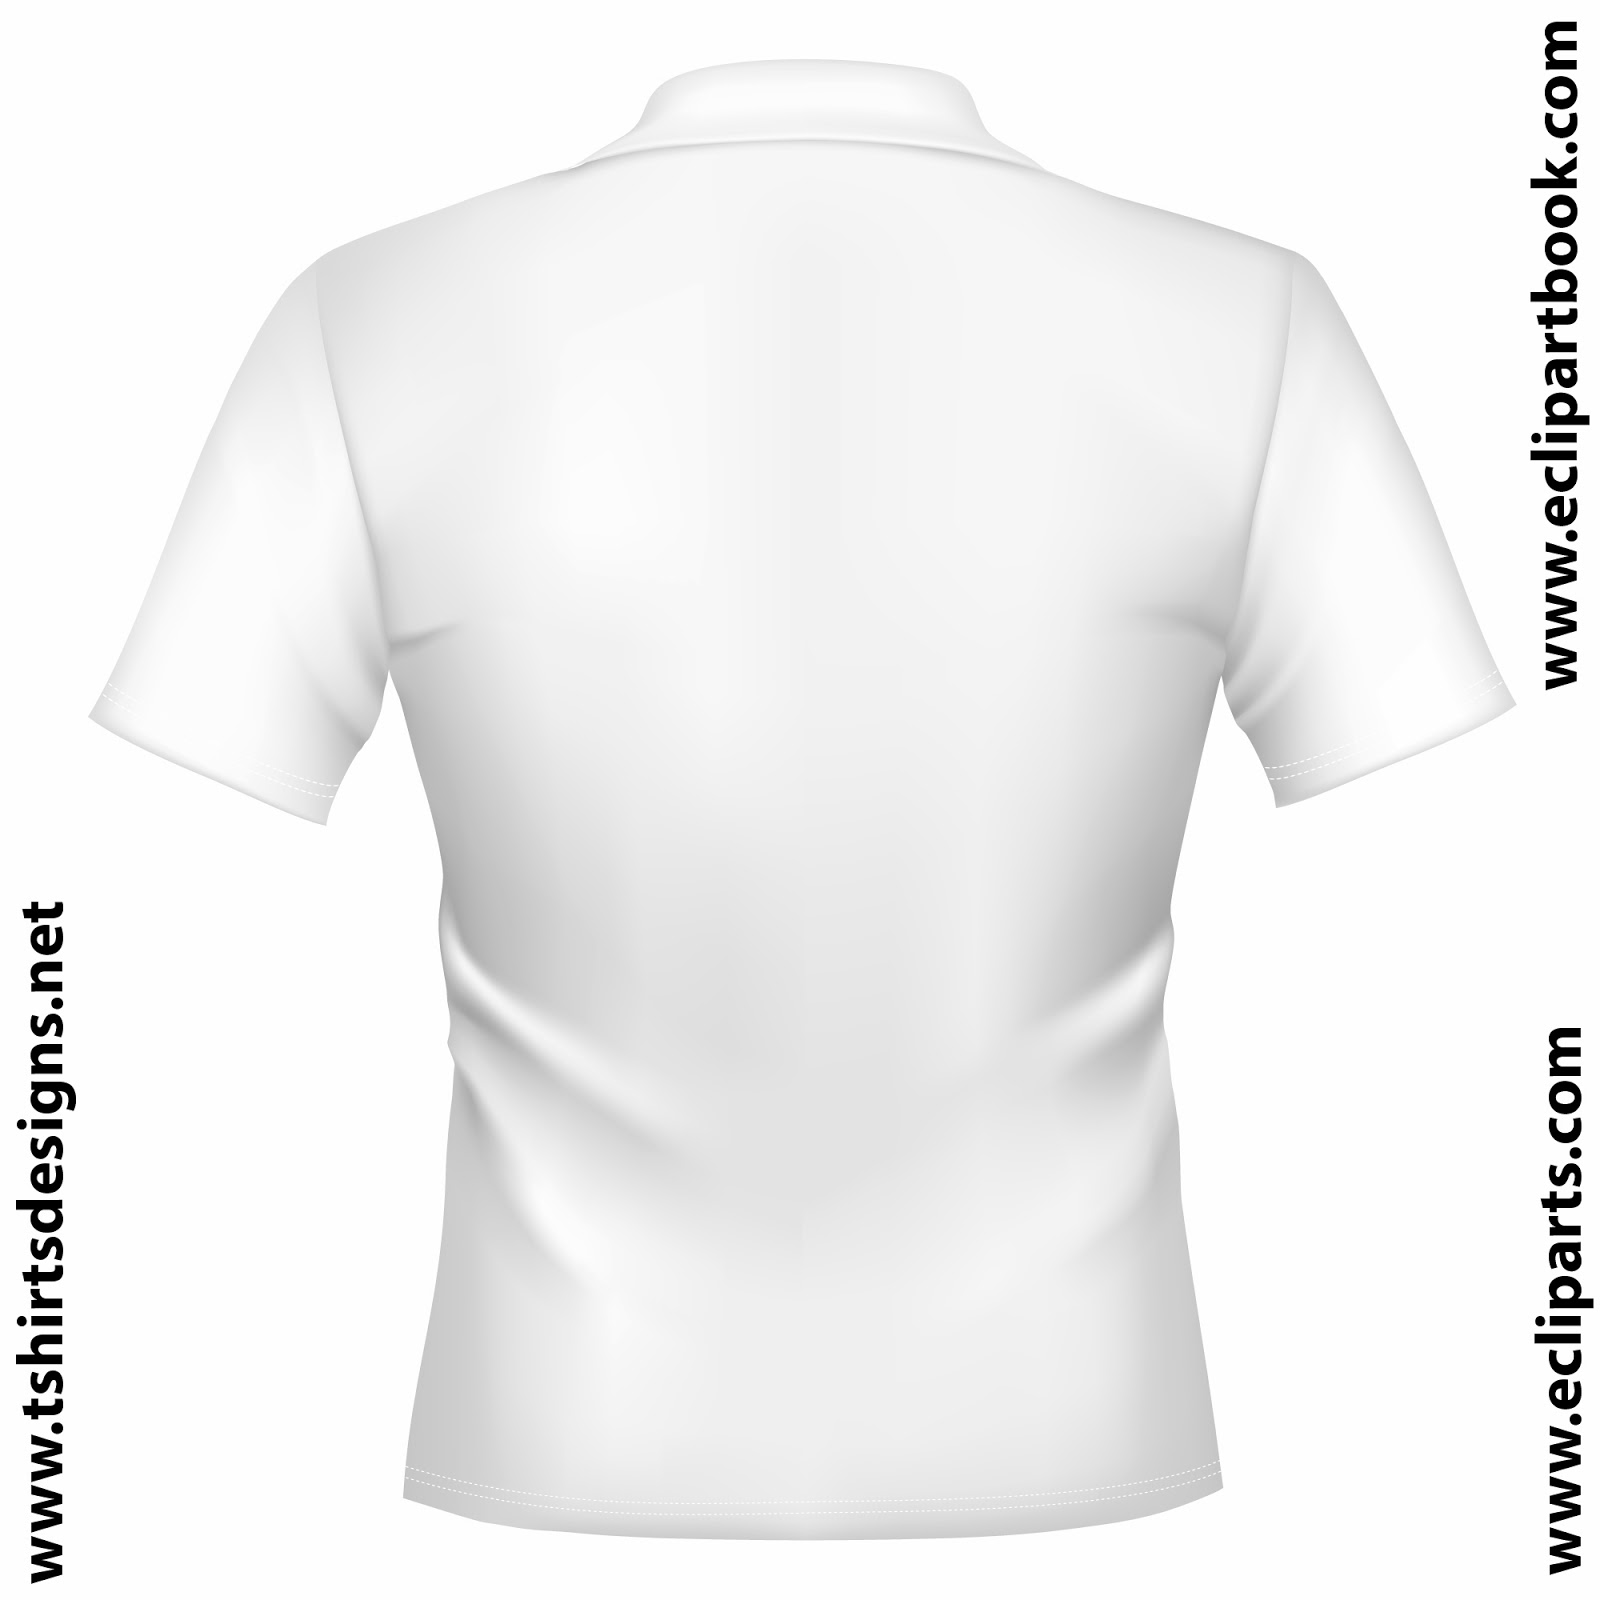 ... Digital t-shirt printing : White Polo T-shirt Front and back view